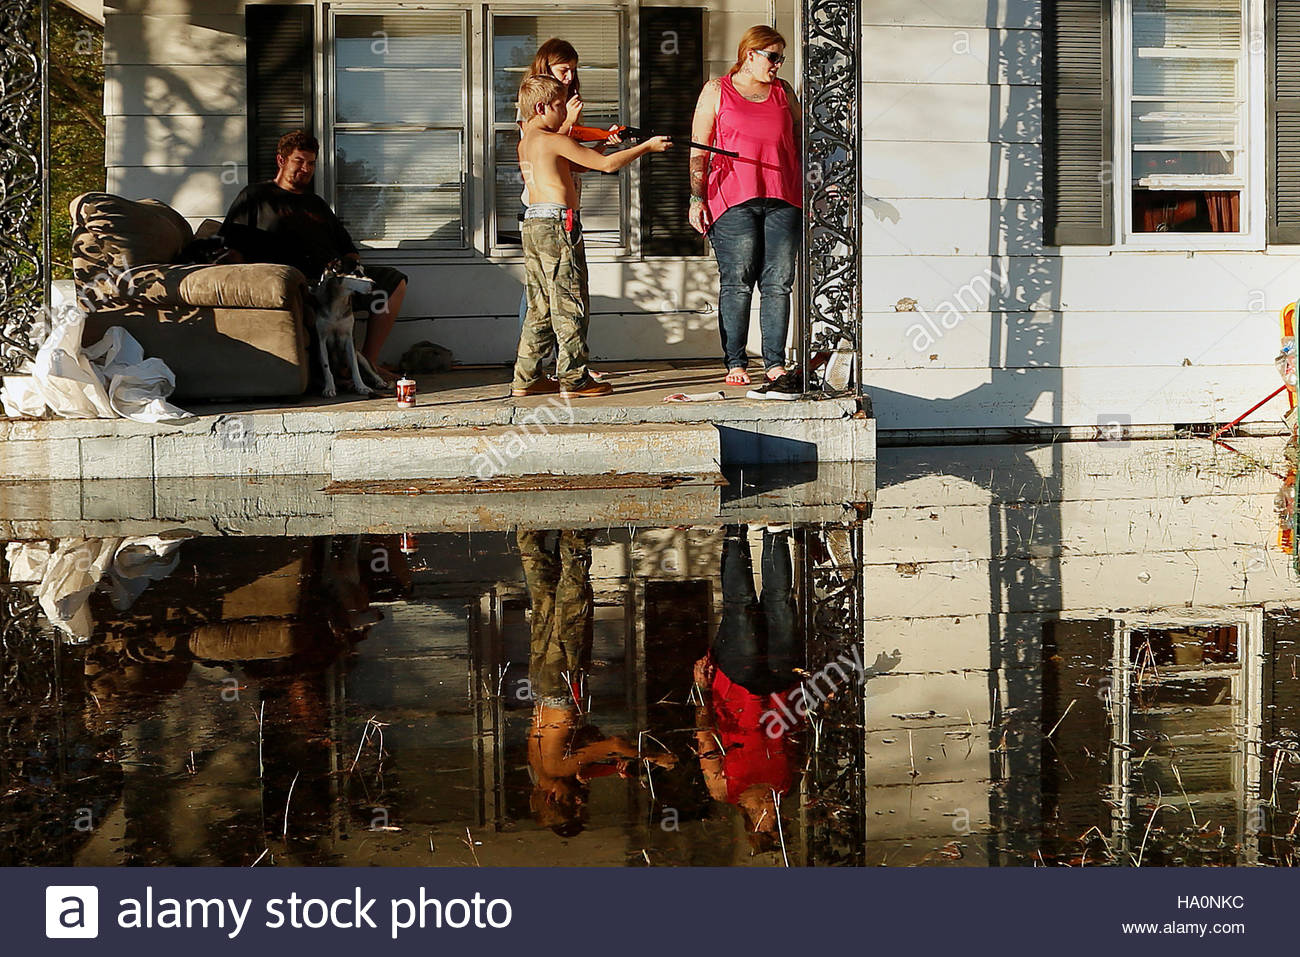 Local residents gather on their front porch as a child shoots a bb gun while they